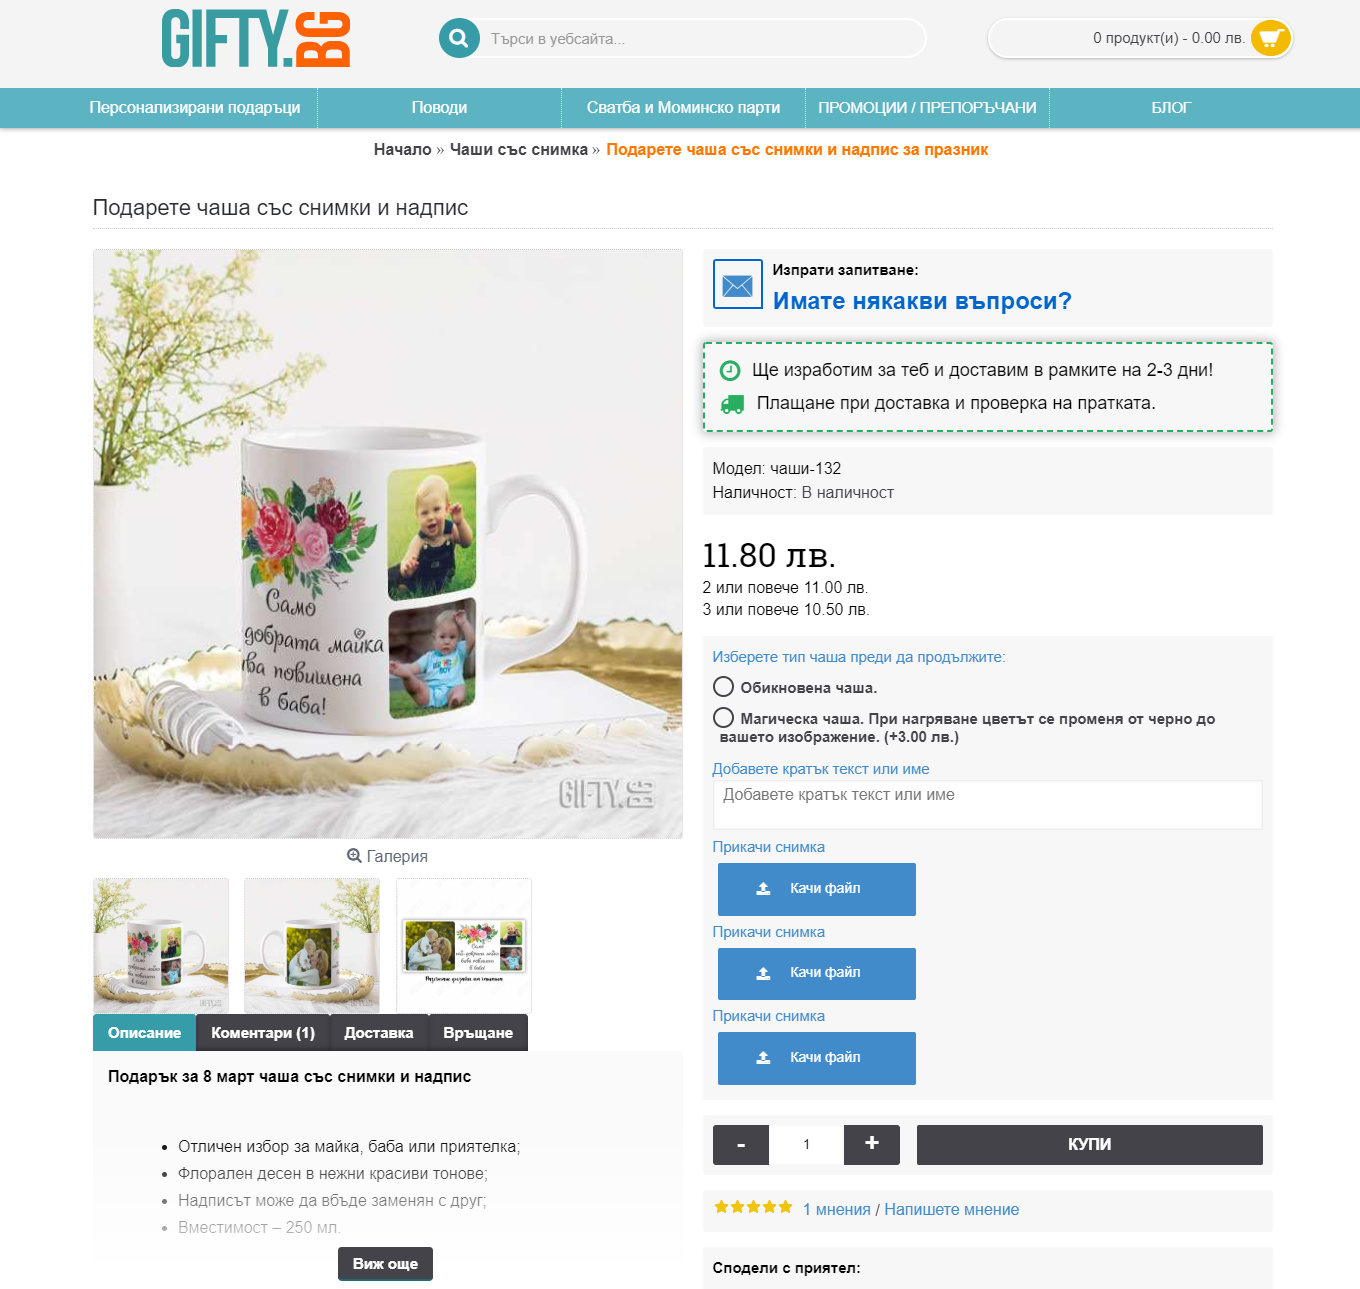 gifty-bg-product-page